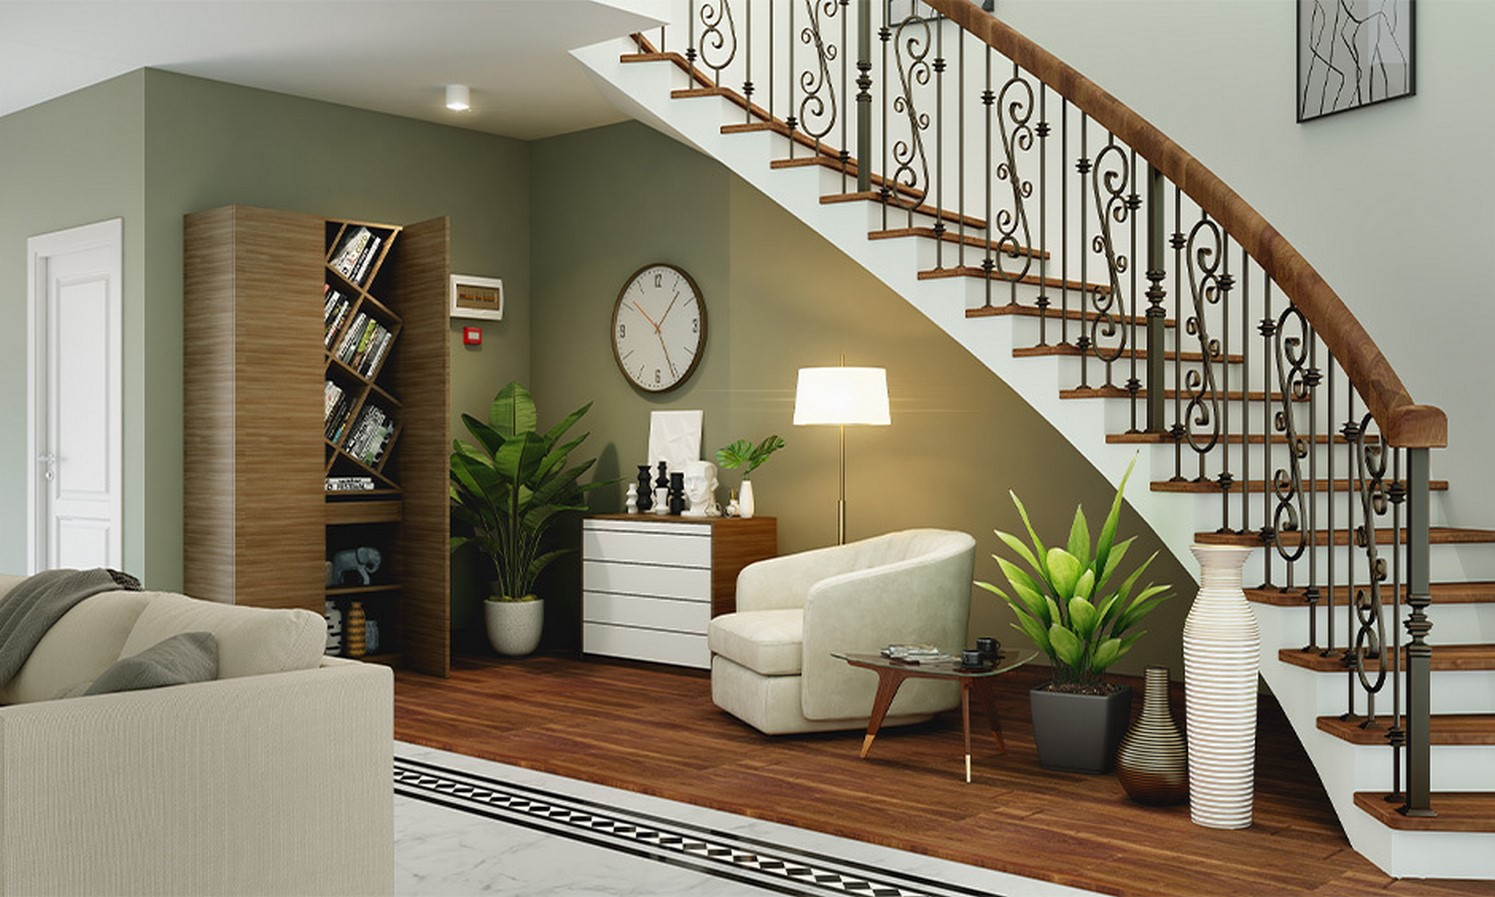 25 Concrete Staircases for Small Houses - sheet20